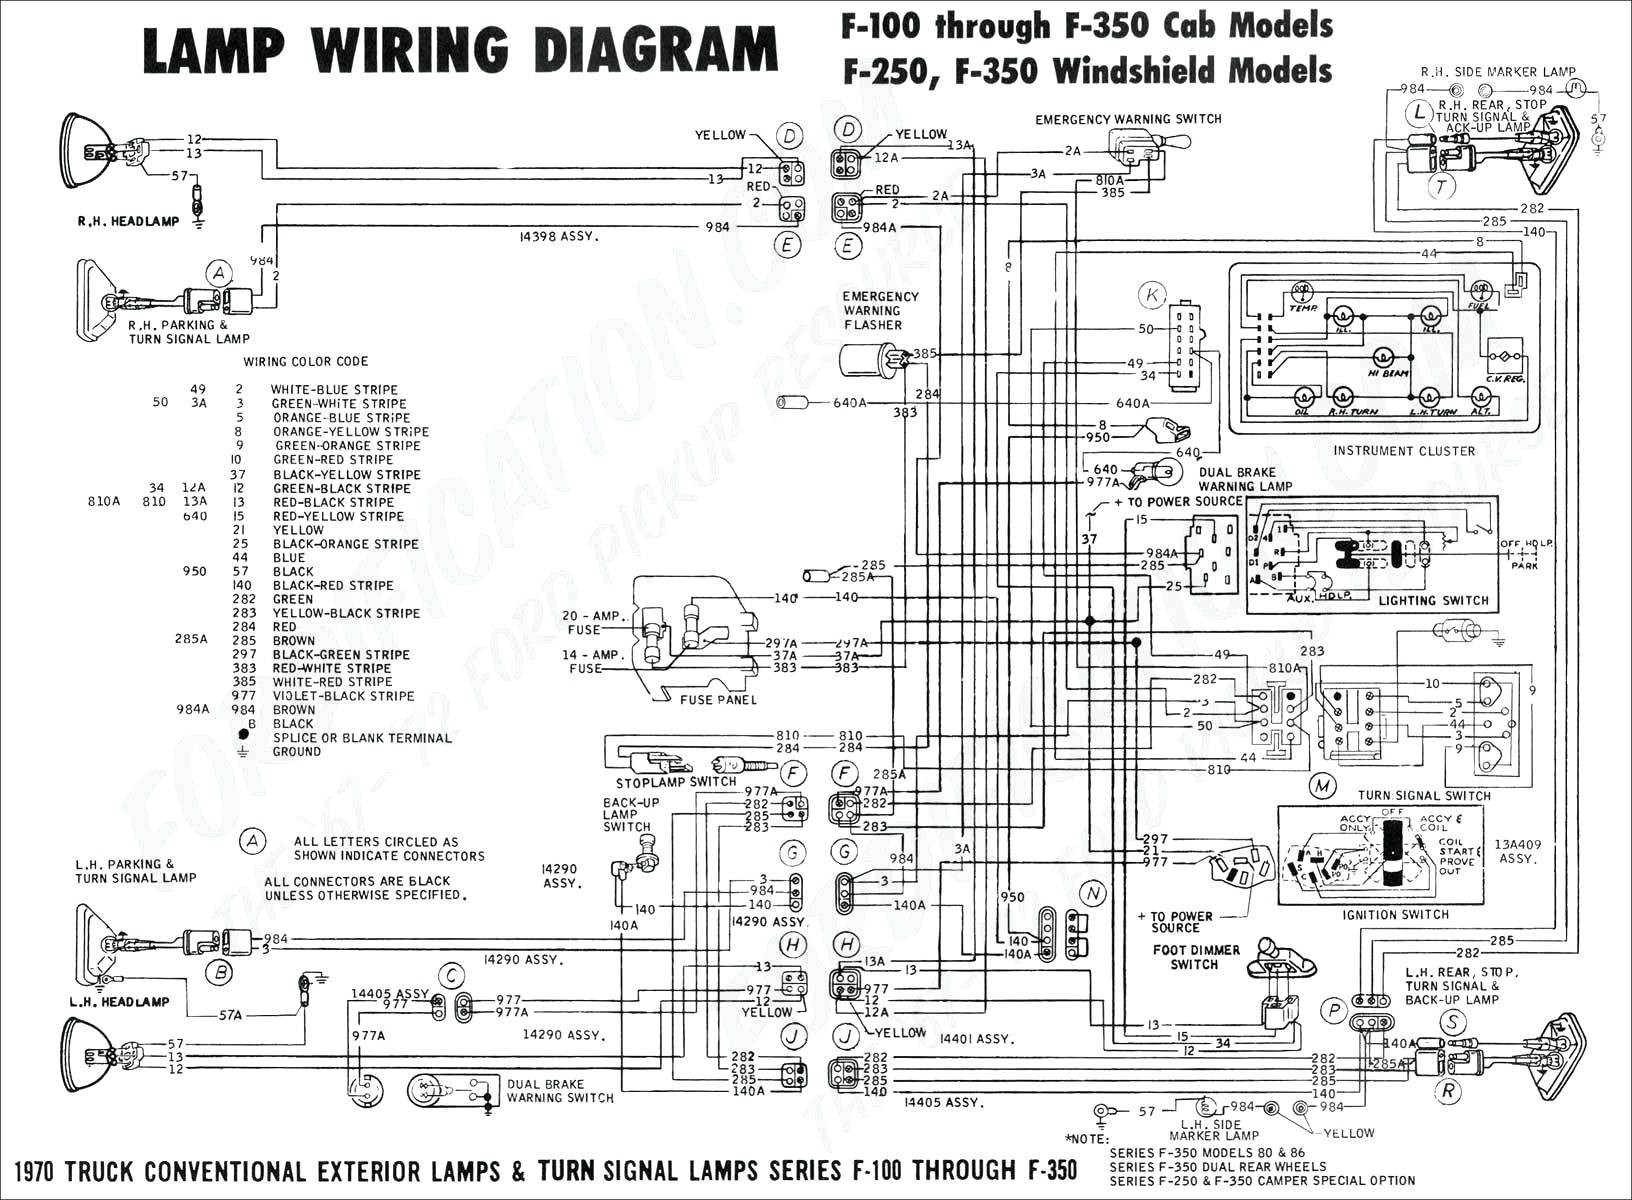 Caterpillar C12 Engine Diagram Olympian Generator Wiring ... on toyota alternator wiring diagram, motorhome battery wiring diagram, olympian generator fuel tank, rv wiring diagram, 12 lead 3 phase motor wiring diagram, manufactured home electrical wiring diagram, wilson alternator wiring diagram, olympian generator control panel, rv charger wire diagram, olympian generator sets, olympian generator wiring model gep18-2, genset wiring diagram, portable generators repair wiring diagram, heater wiring diagram, olympian generator drawings, power converter charger installation diagram,